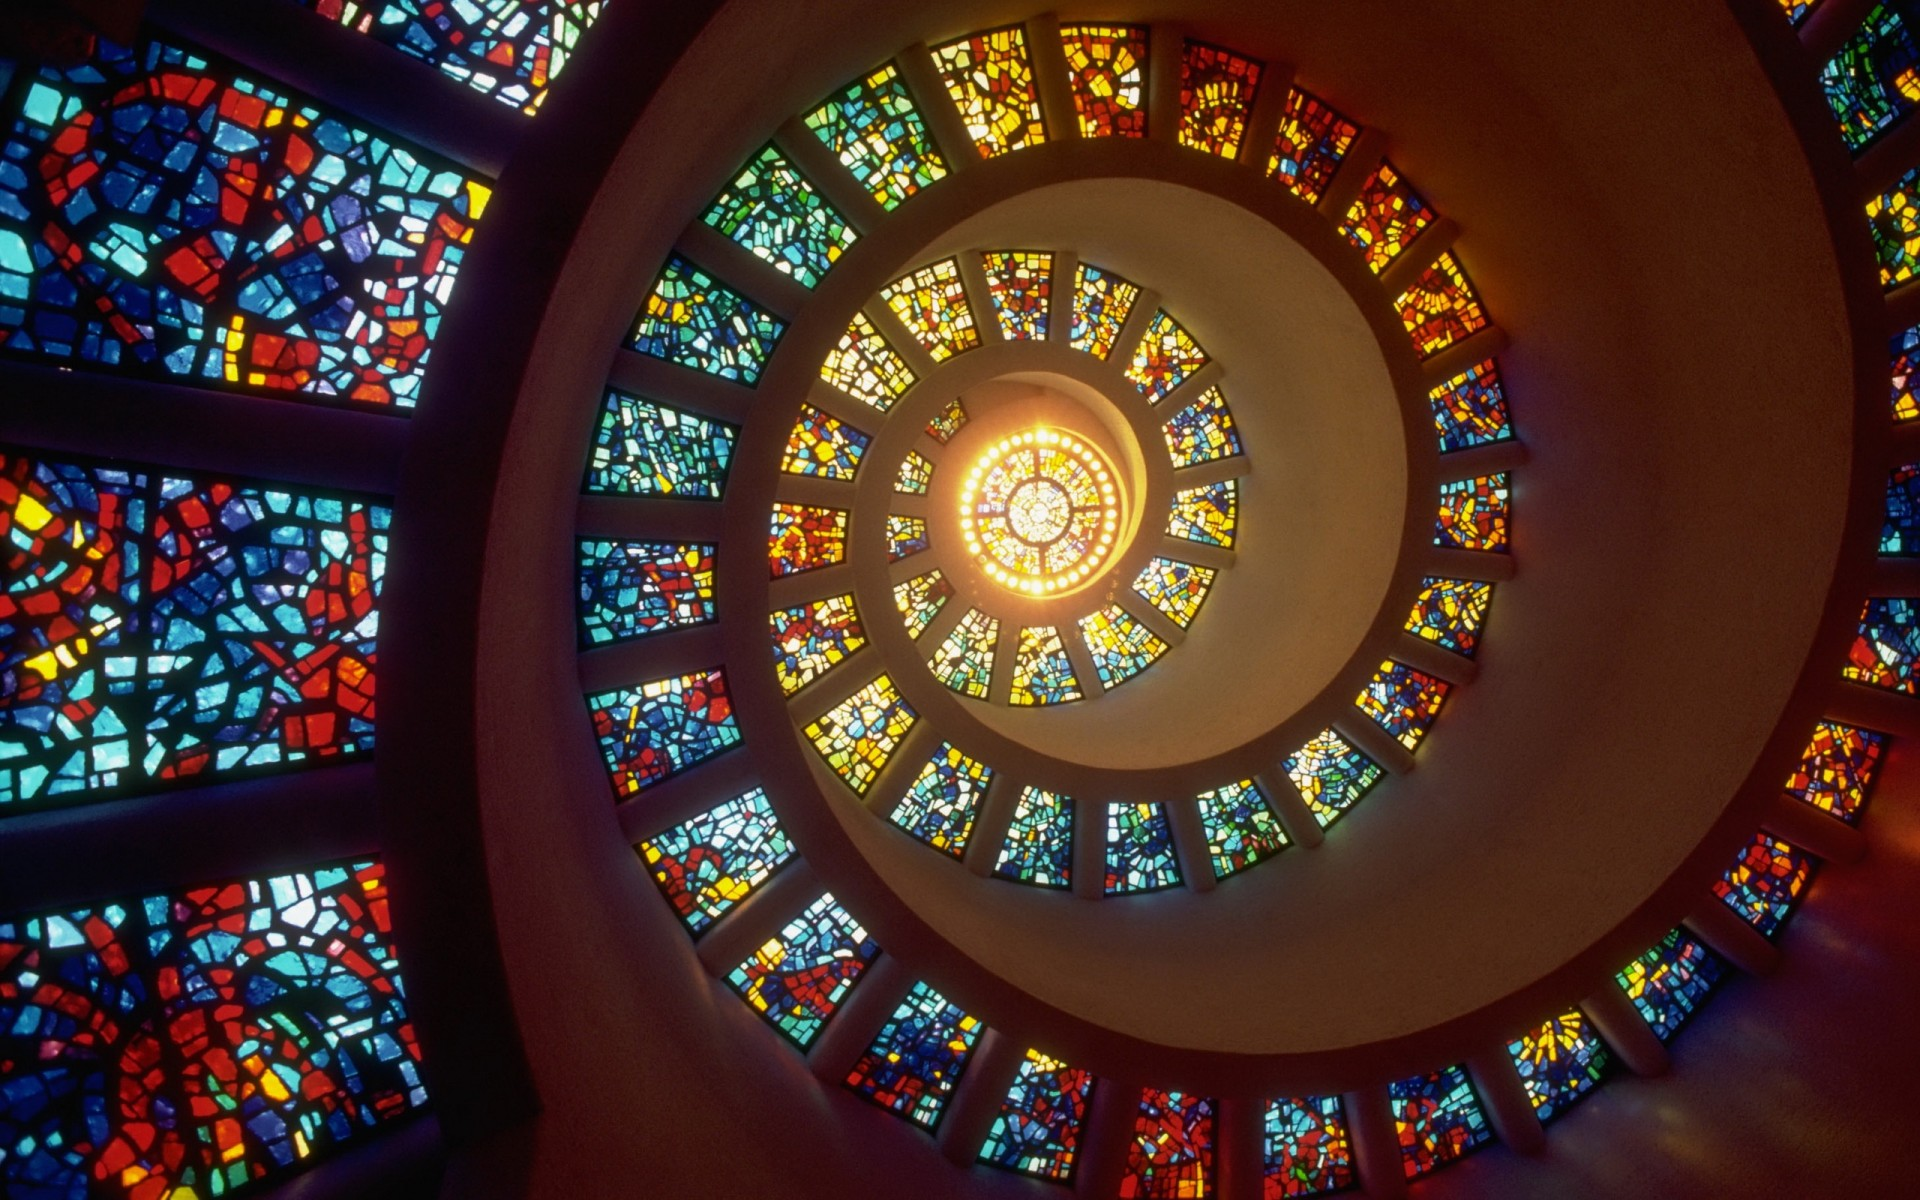 Circle Stained Glass Design Backgrounds For Powerpoint Templates Ppt Backgrounds